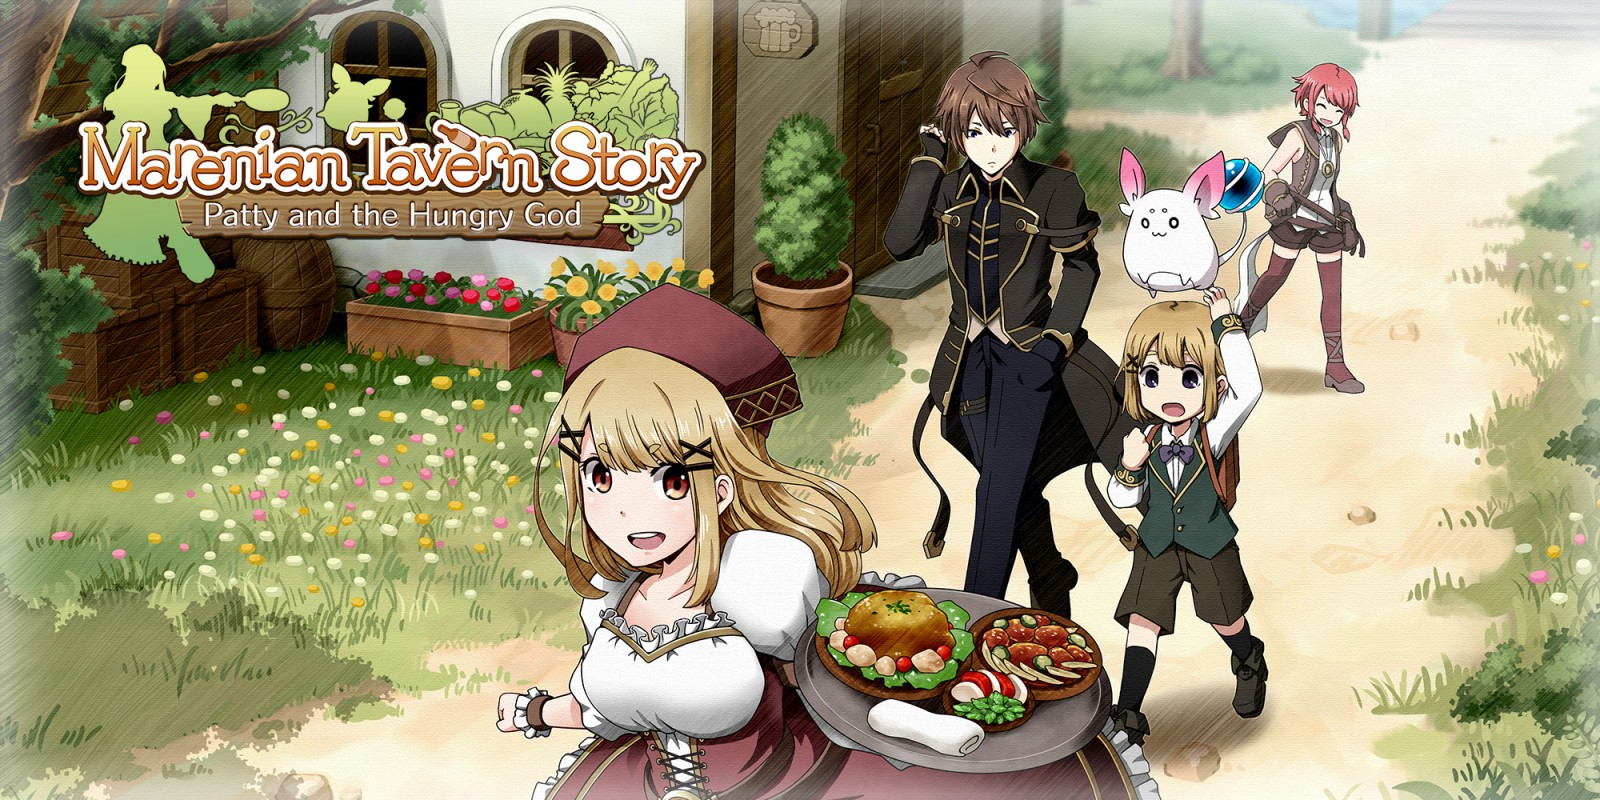 Read more about the article Marenian Tavern Story: Patty and the Hungry God Review [Switch]